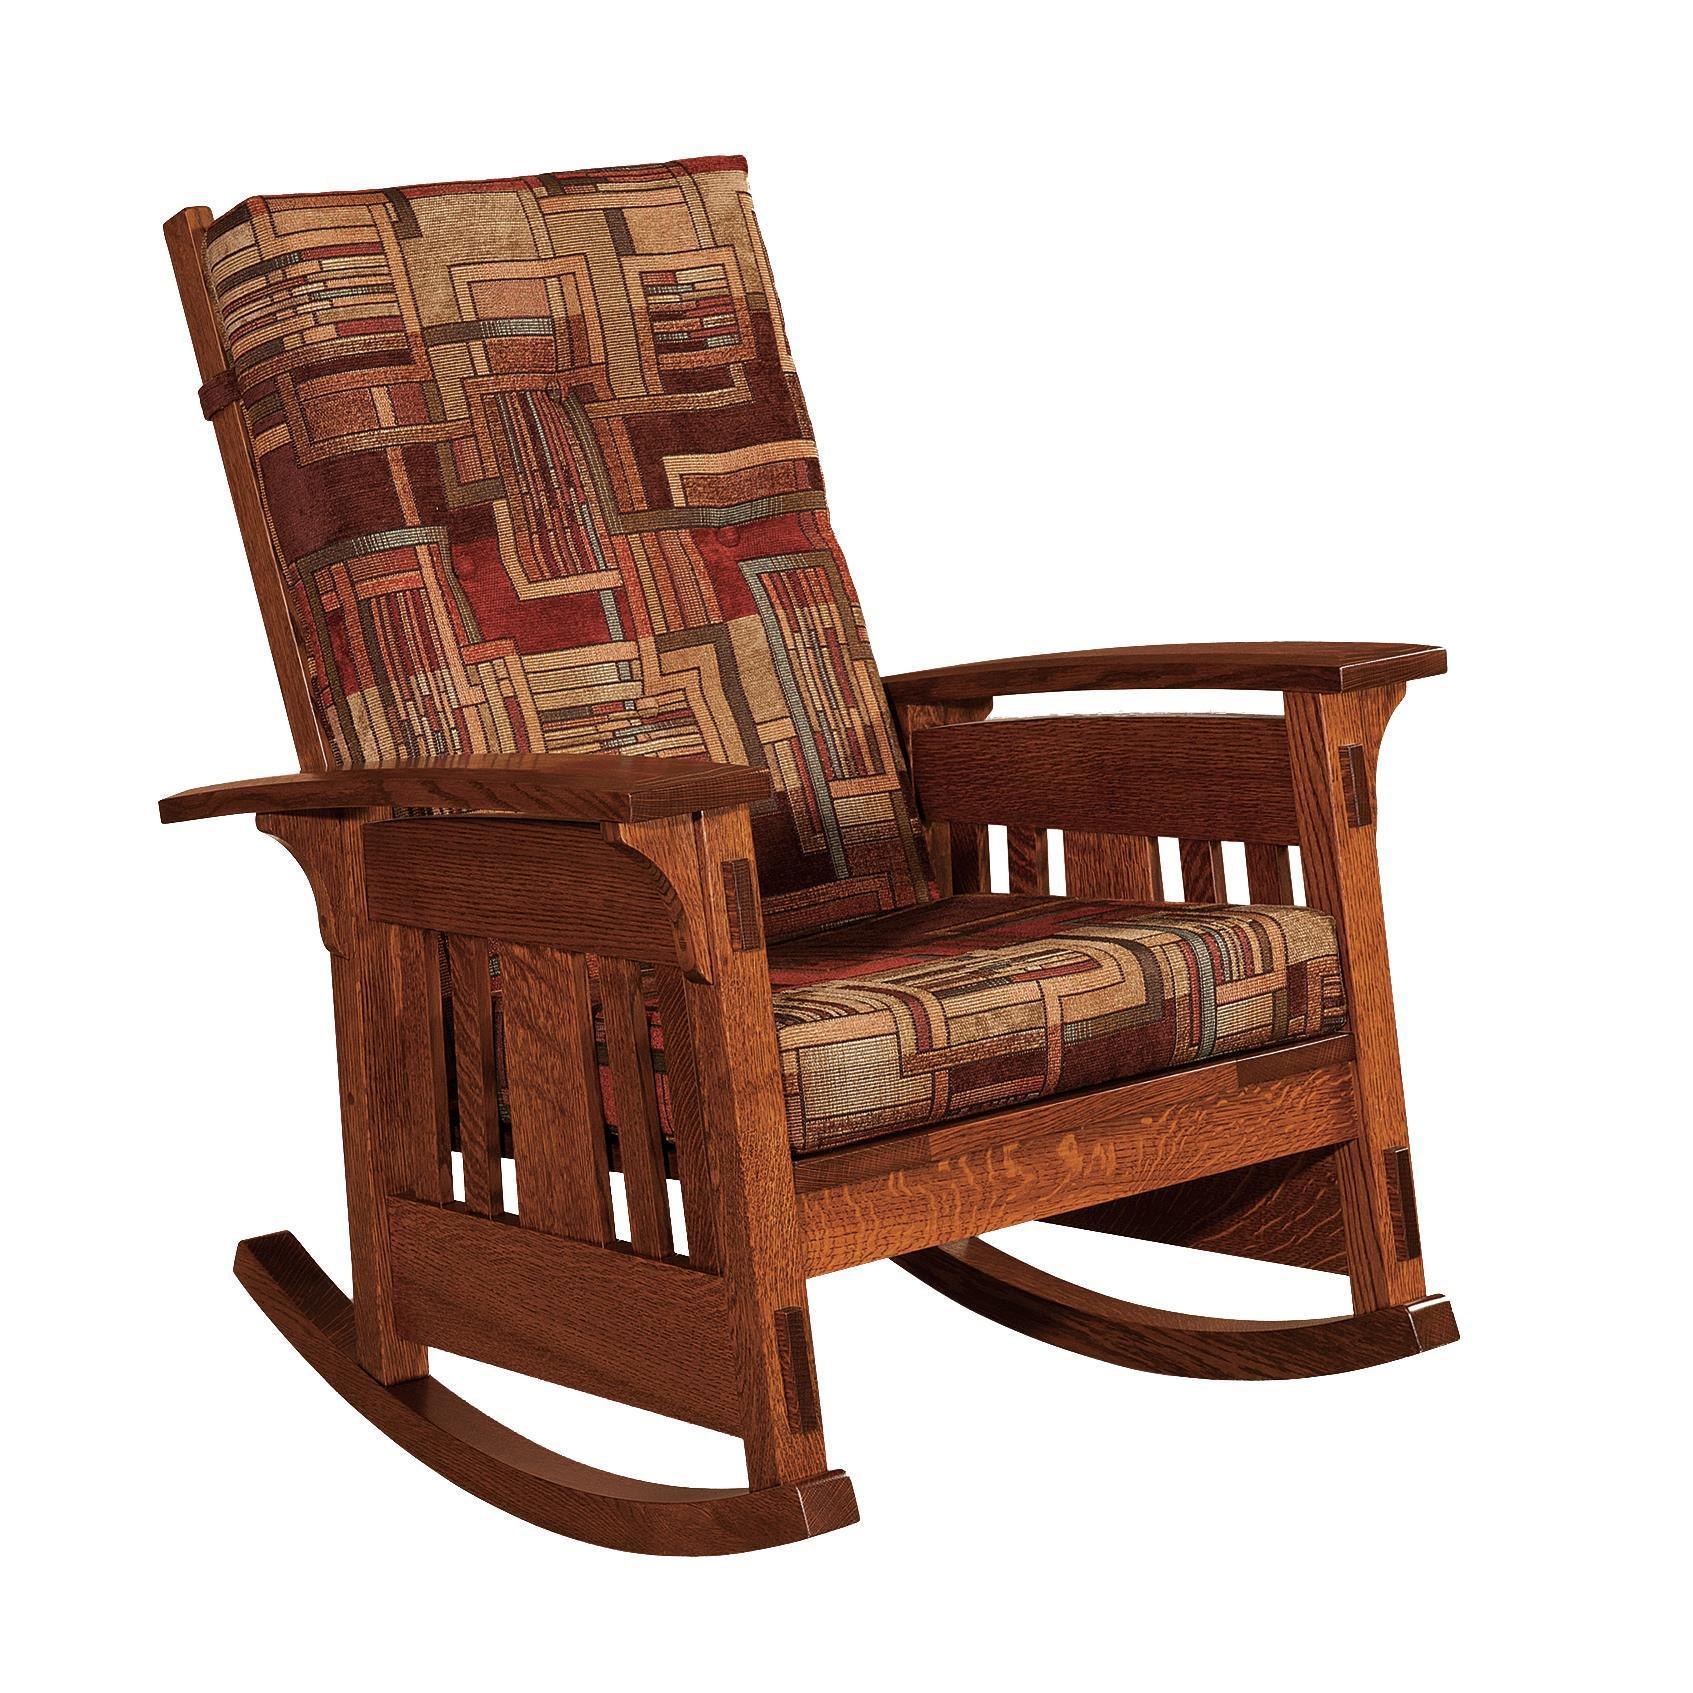 Amish Mccoy Mission Upholstered Rocking Chair Throughout Padded Rocking Chairs (#1 of 20)